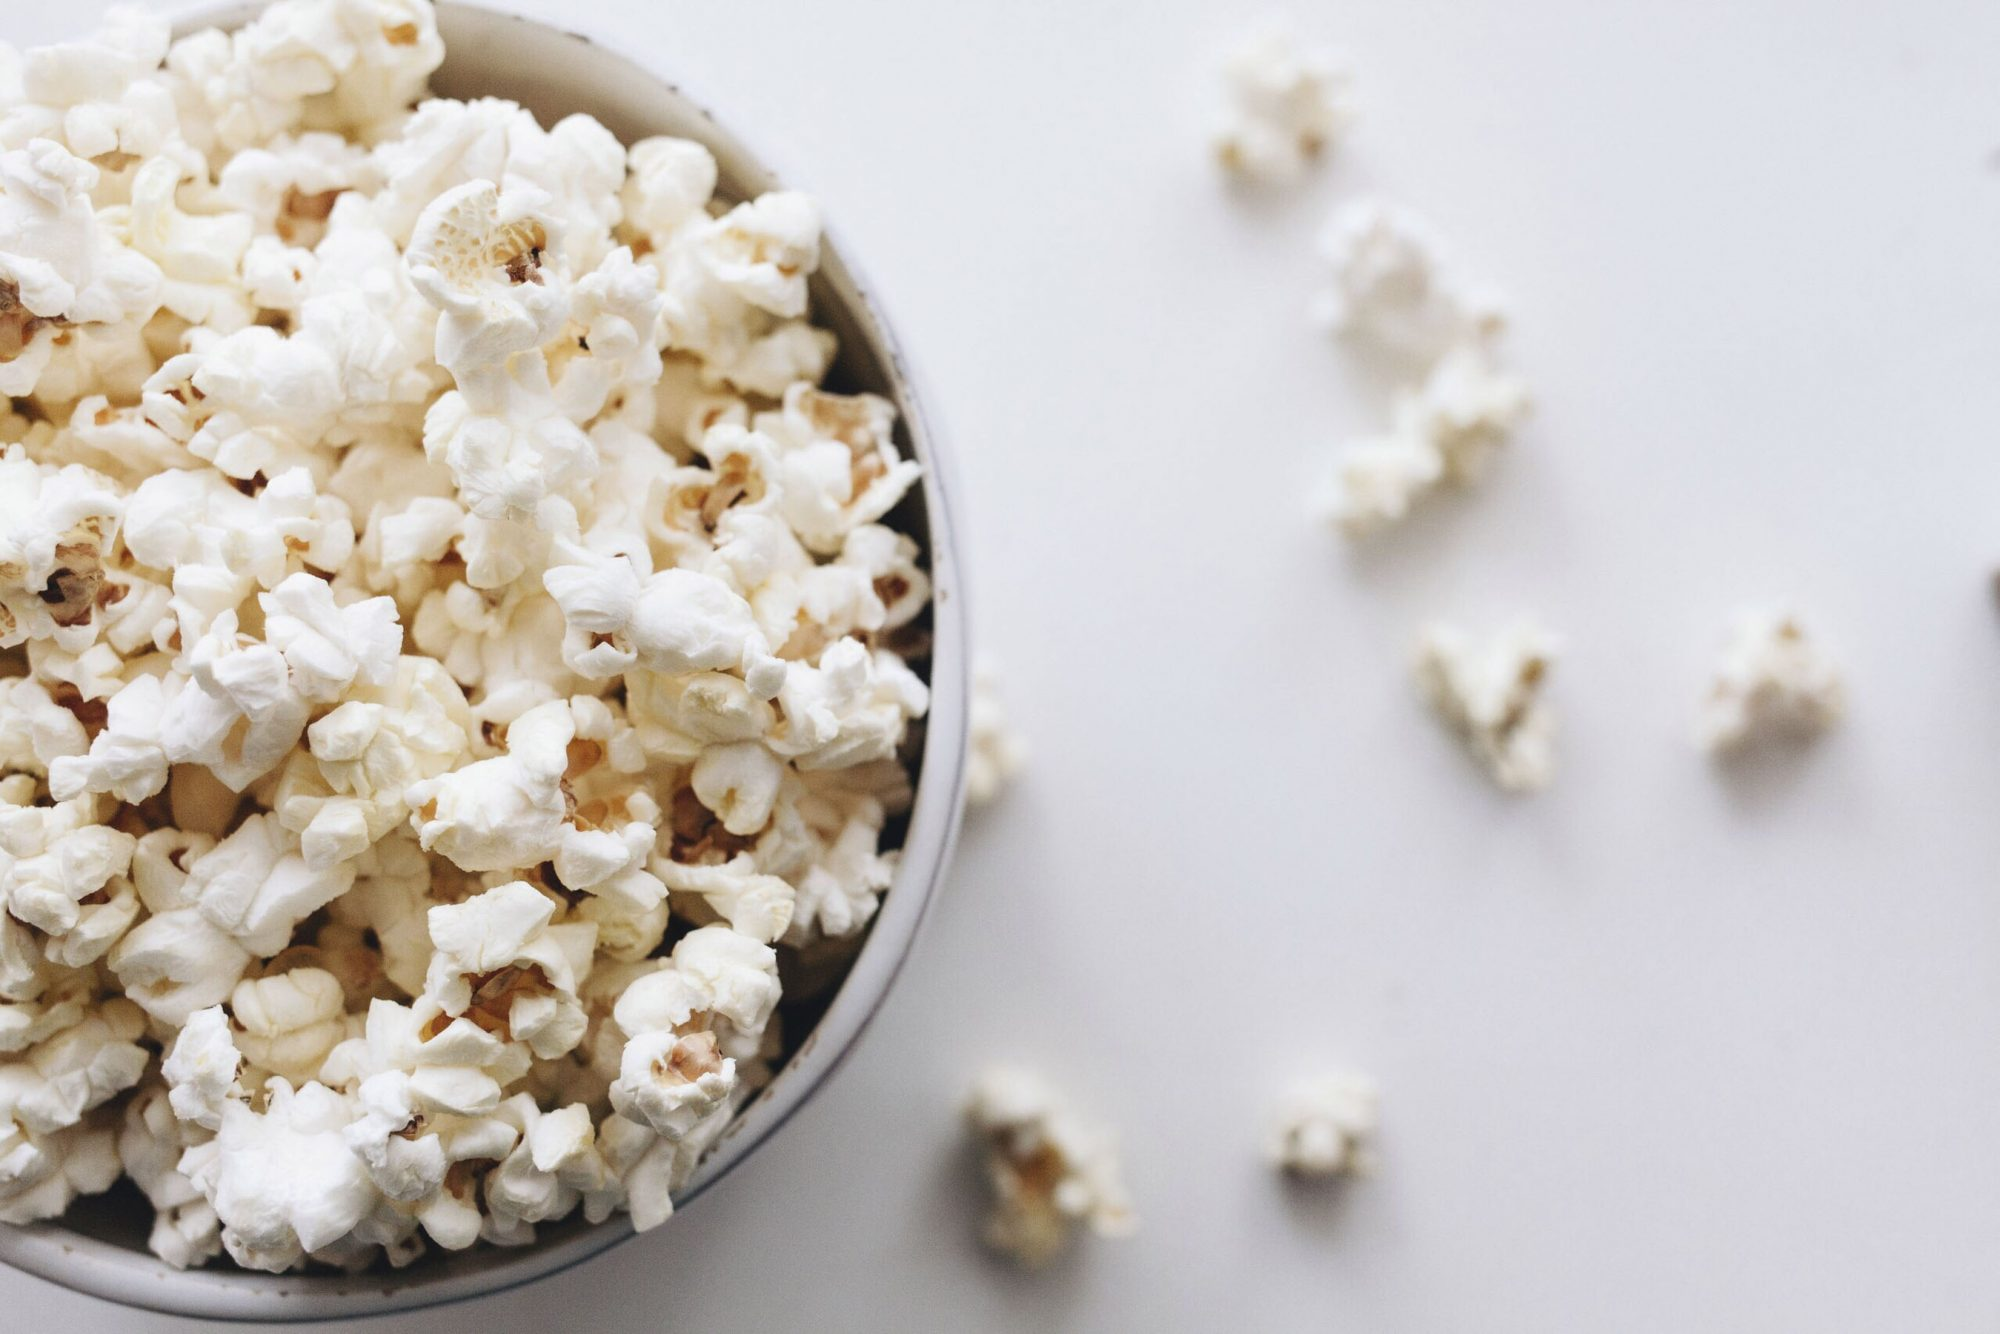 Close-Up Of Popcorn In Bowl On Table